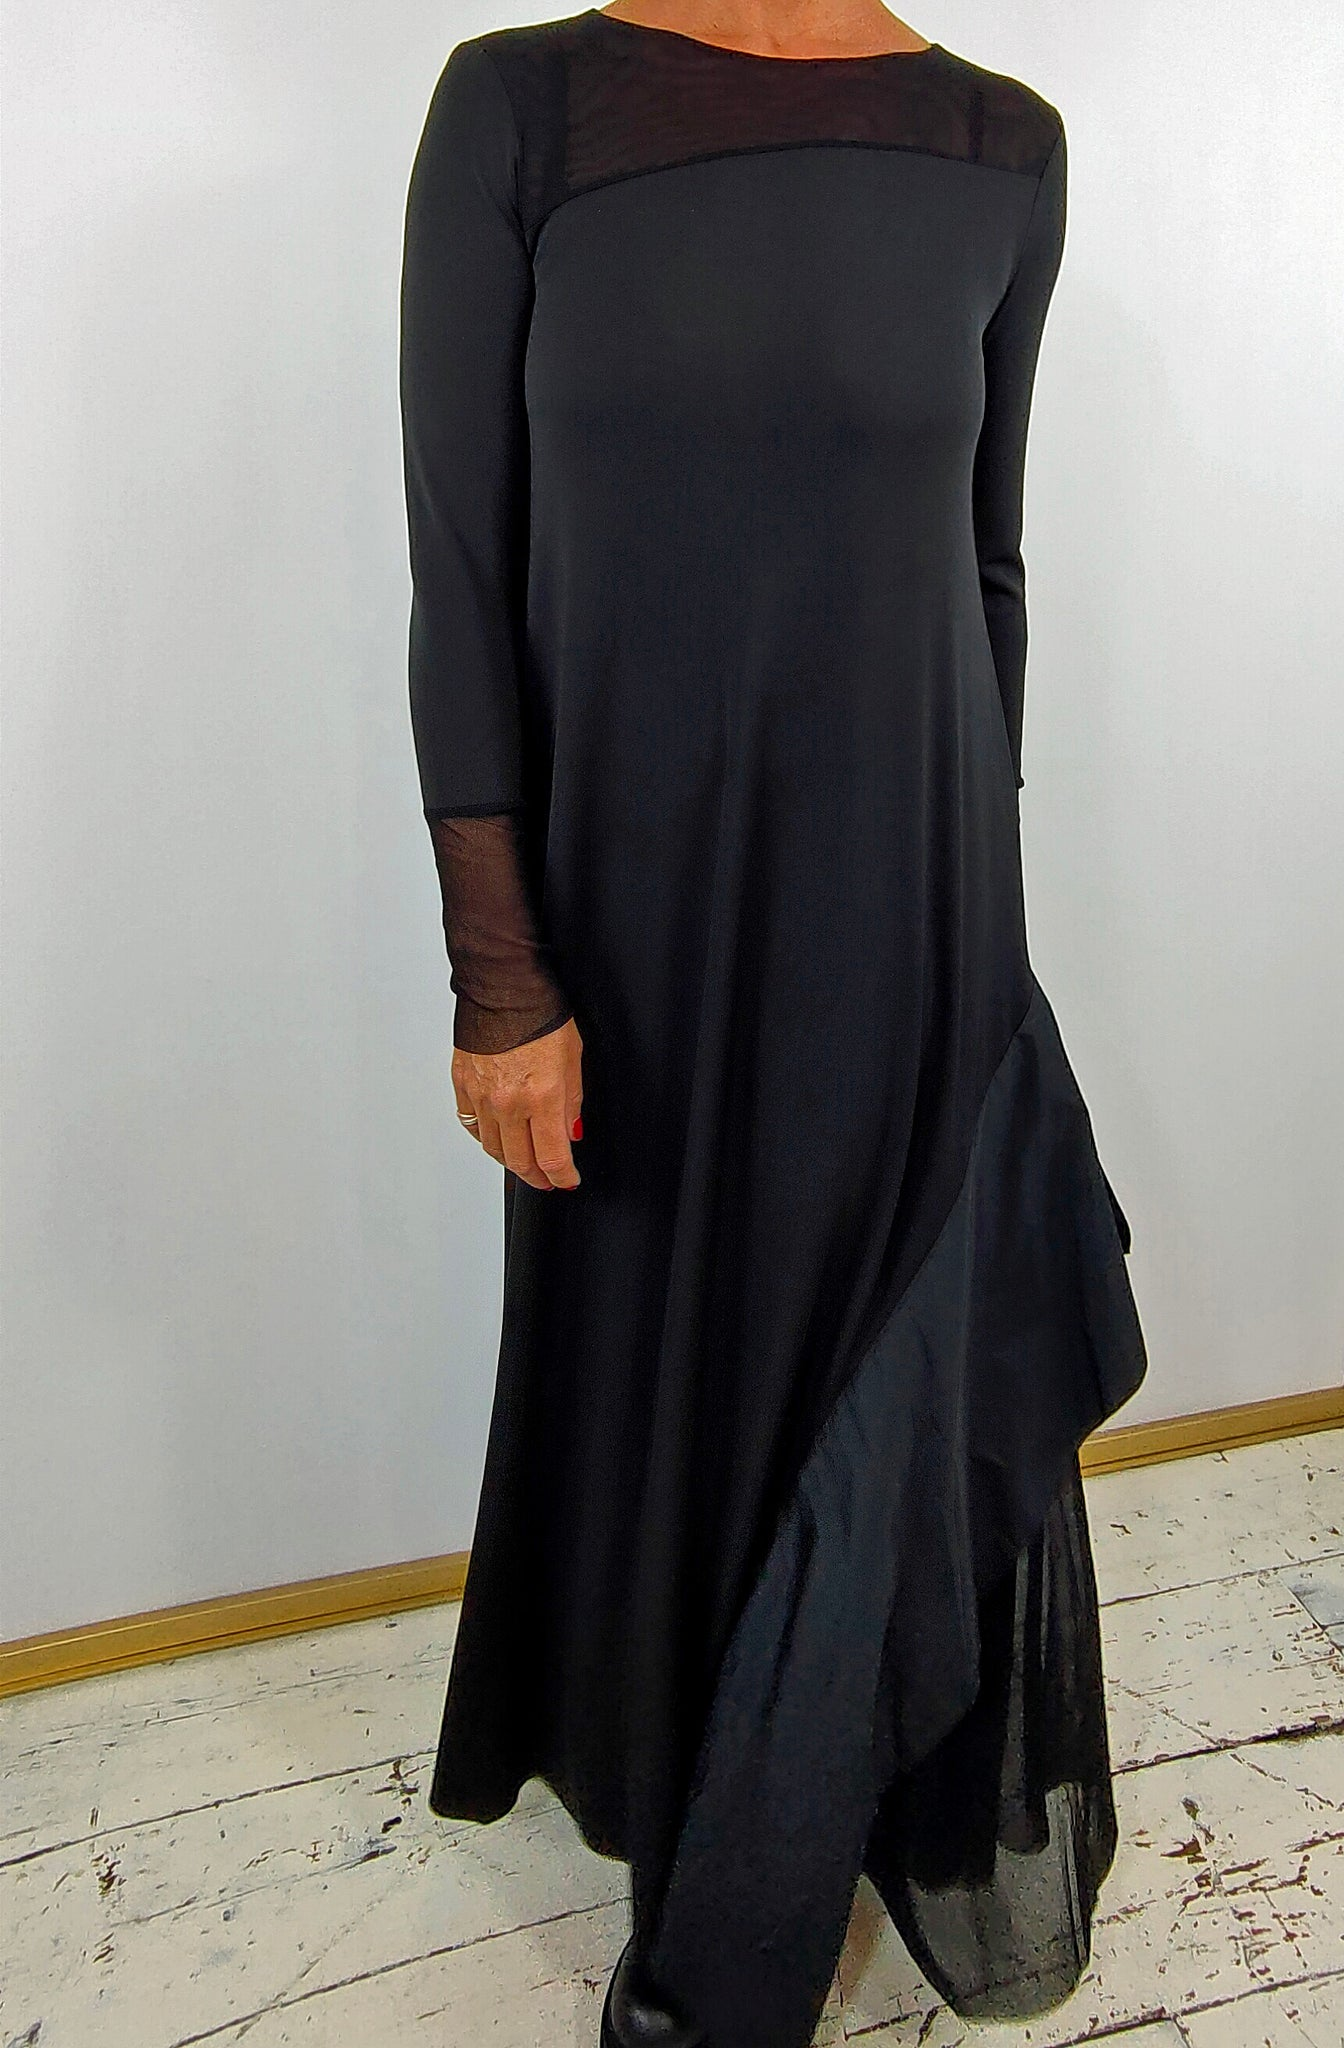 XD Xenia Design Long Dress [ATIA] in Black